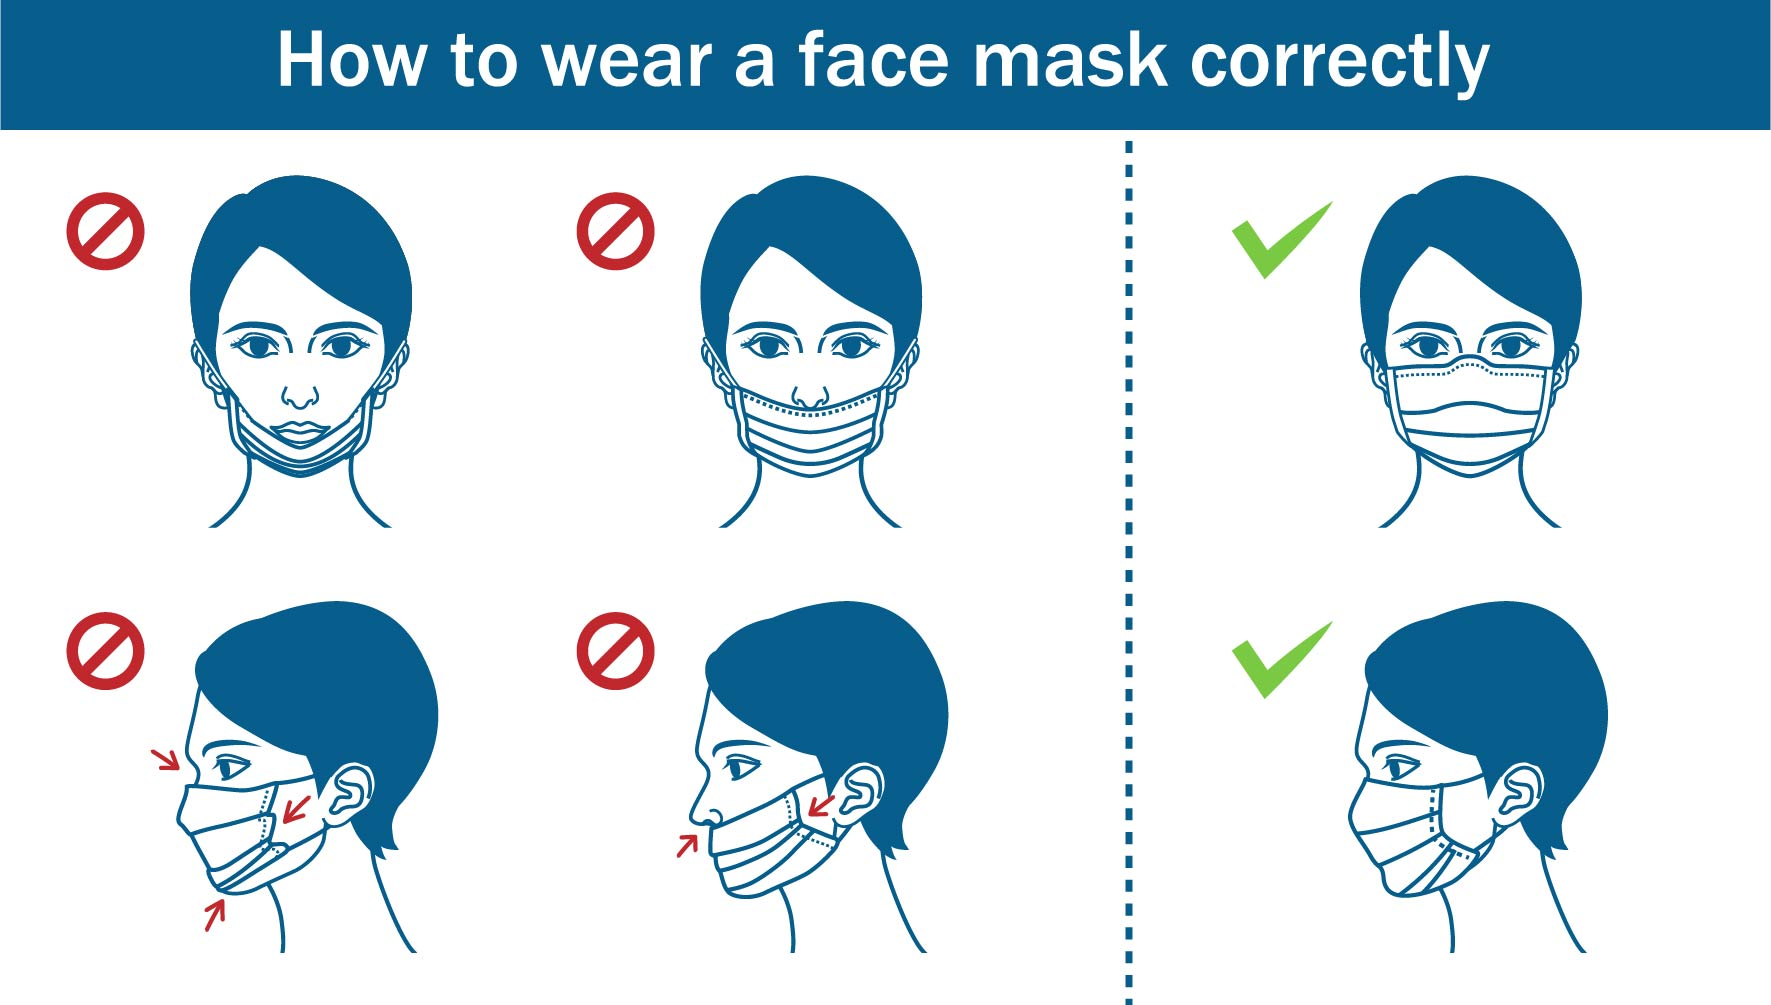 Directions on how to wear a face mask correctly